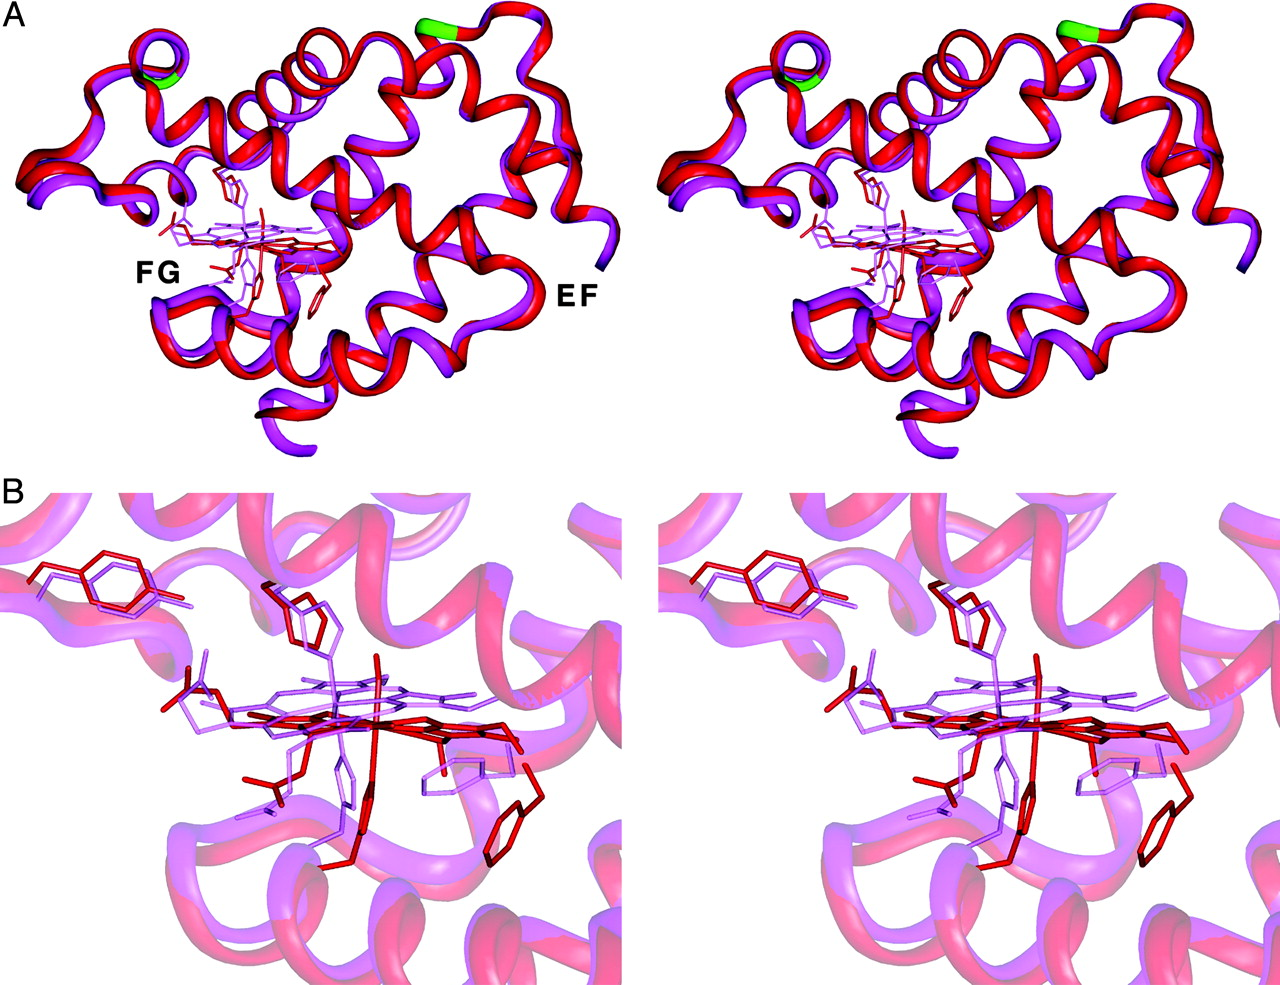 Stereo diagrams of the structures of NgbCO (red) and unligated metNgb (magenta) in ribbon representation.